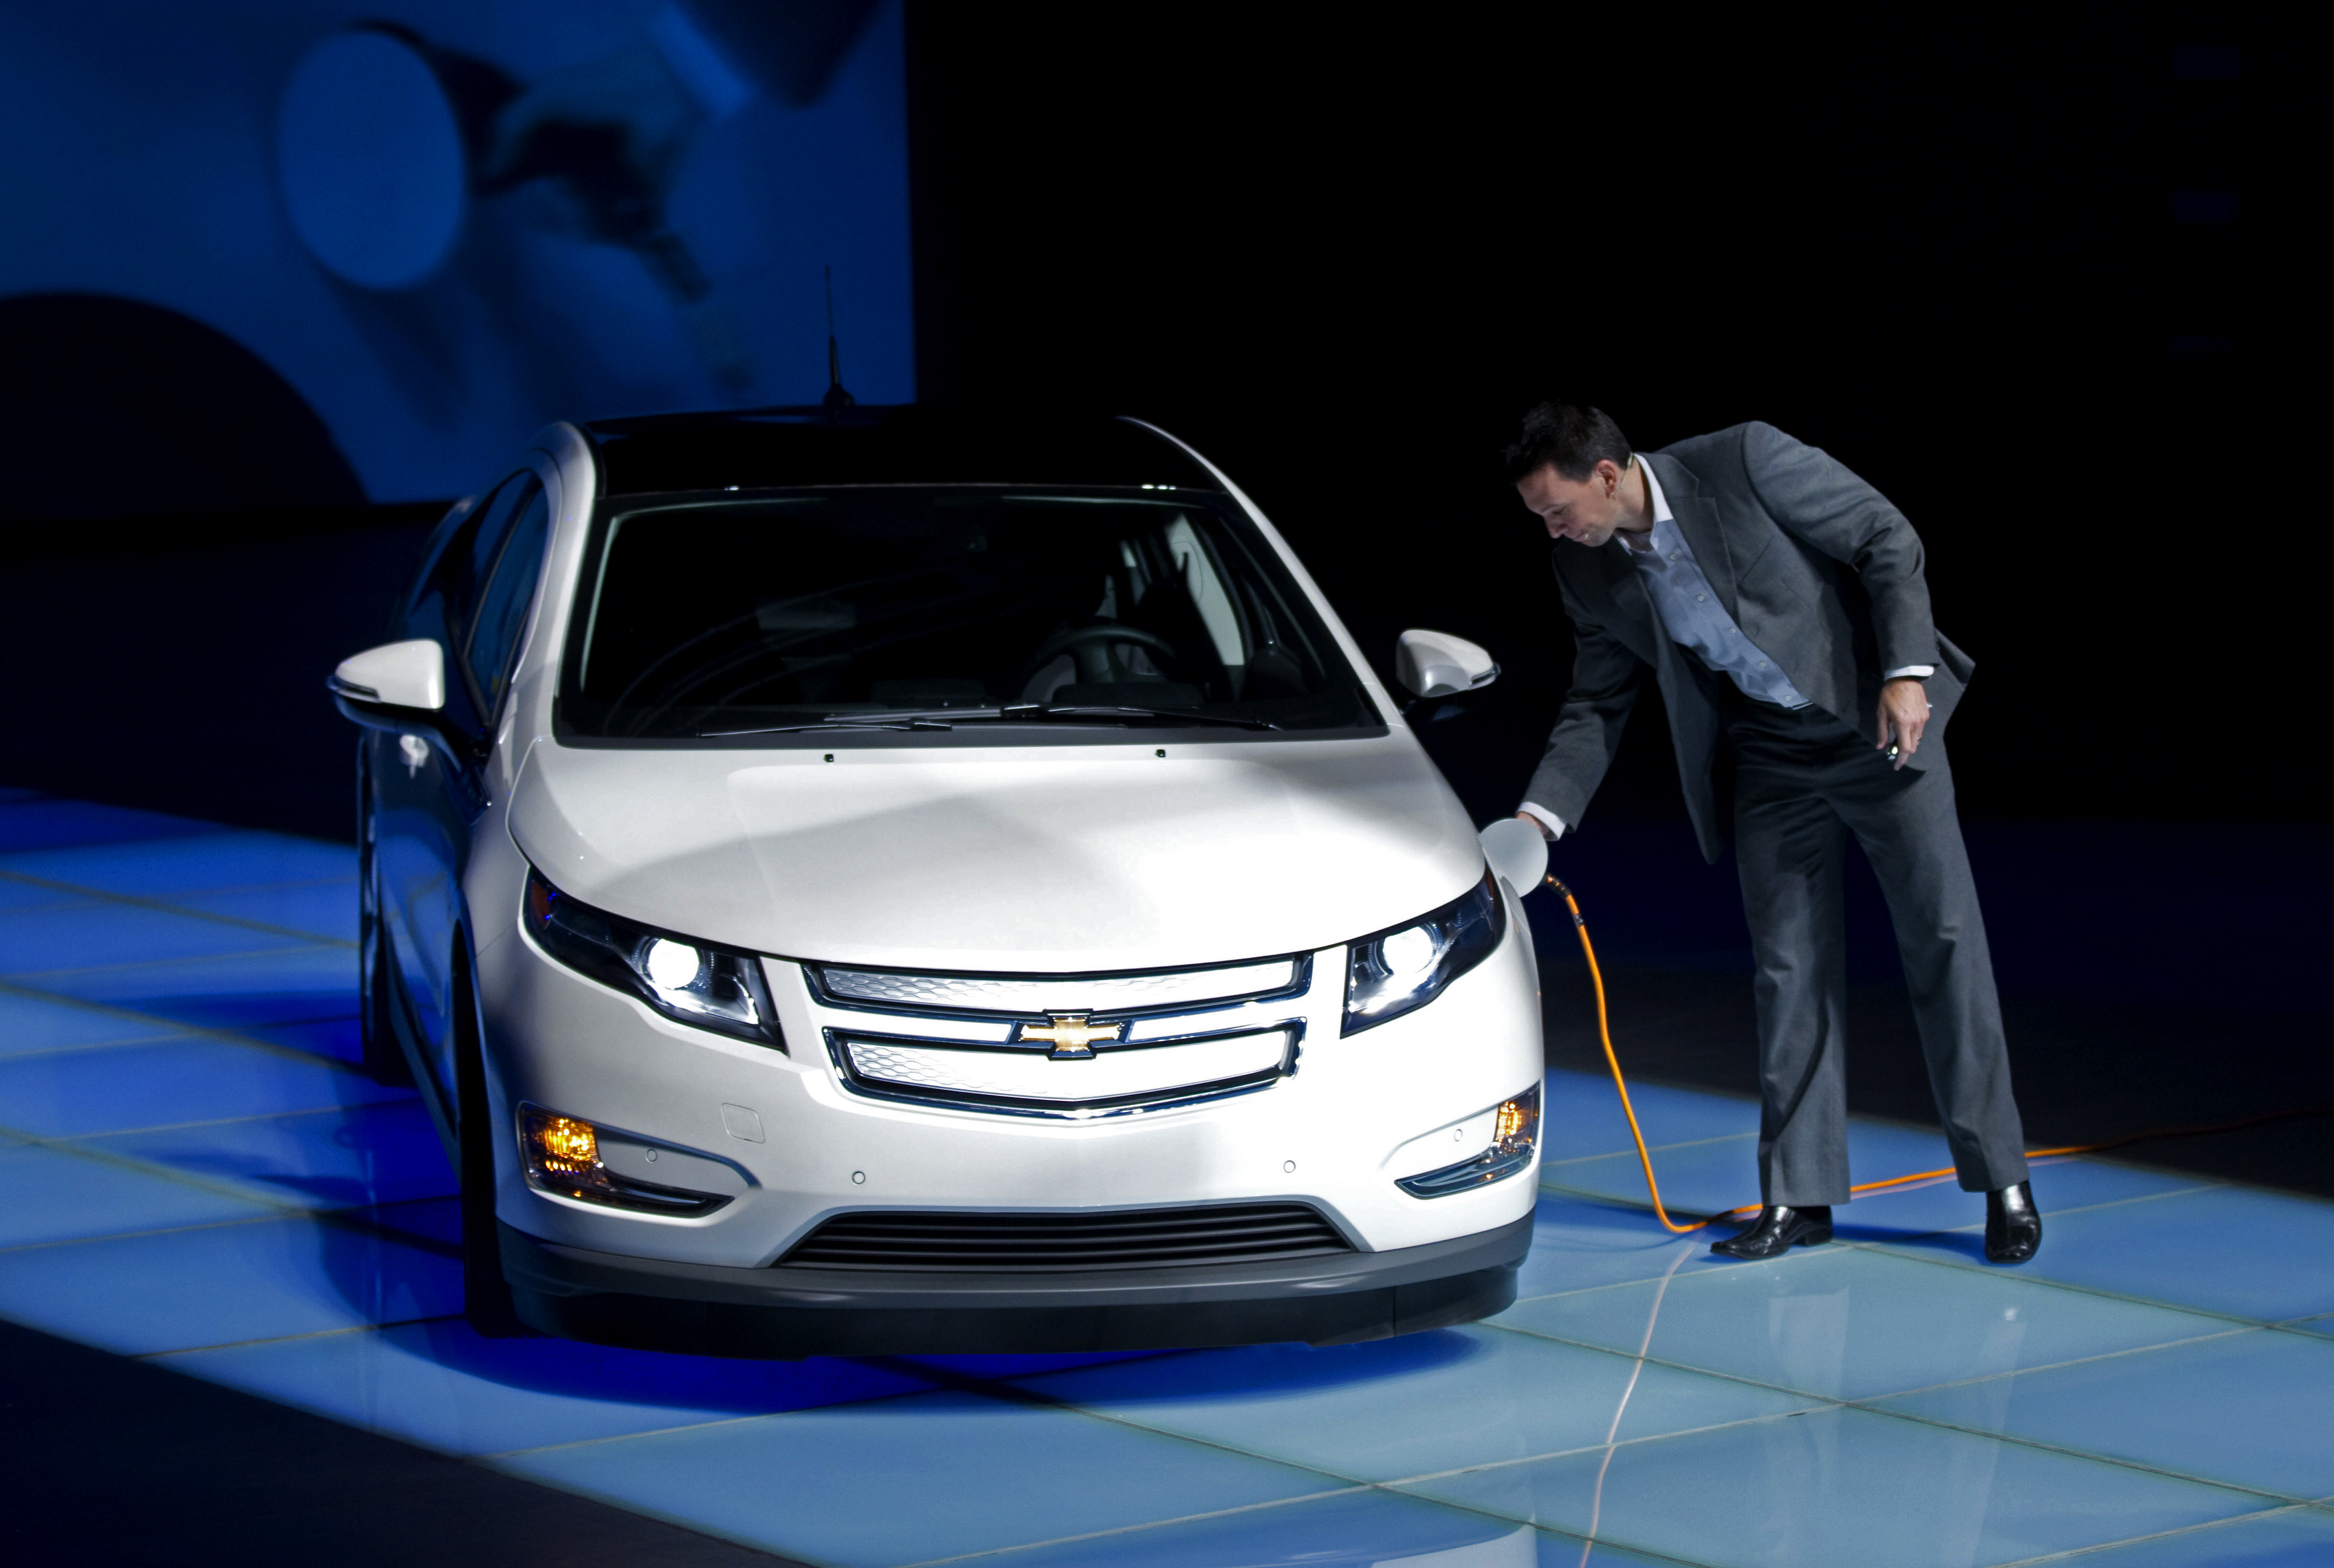 GM Delivers Two Volts To Shanghai Expo Bureau